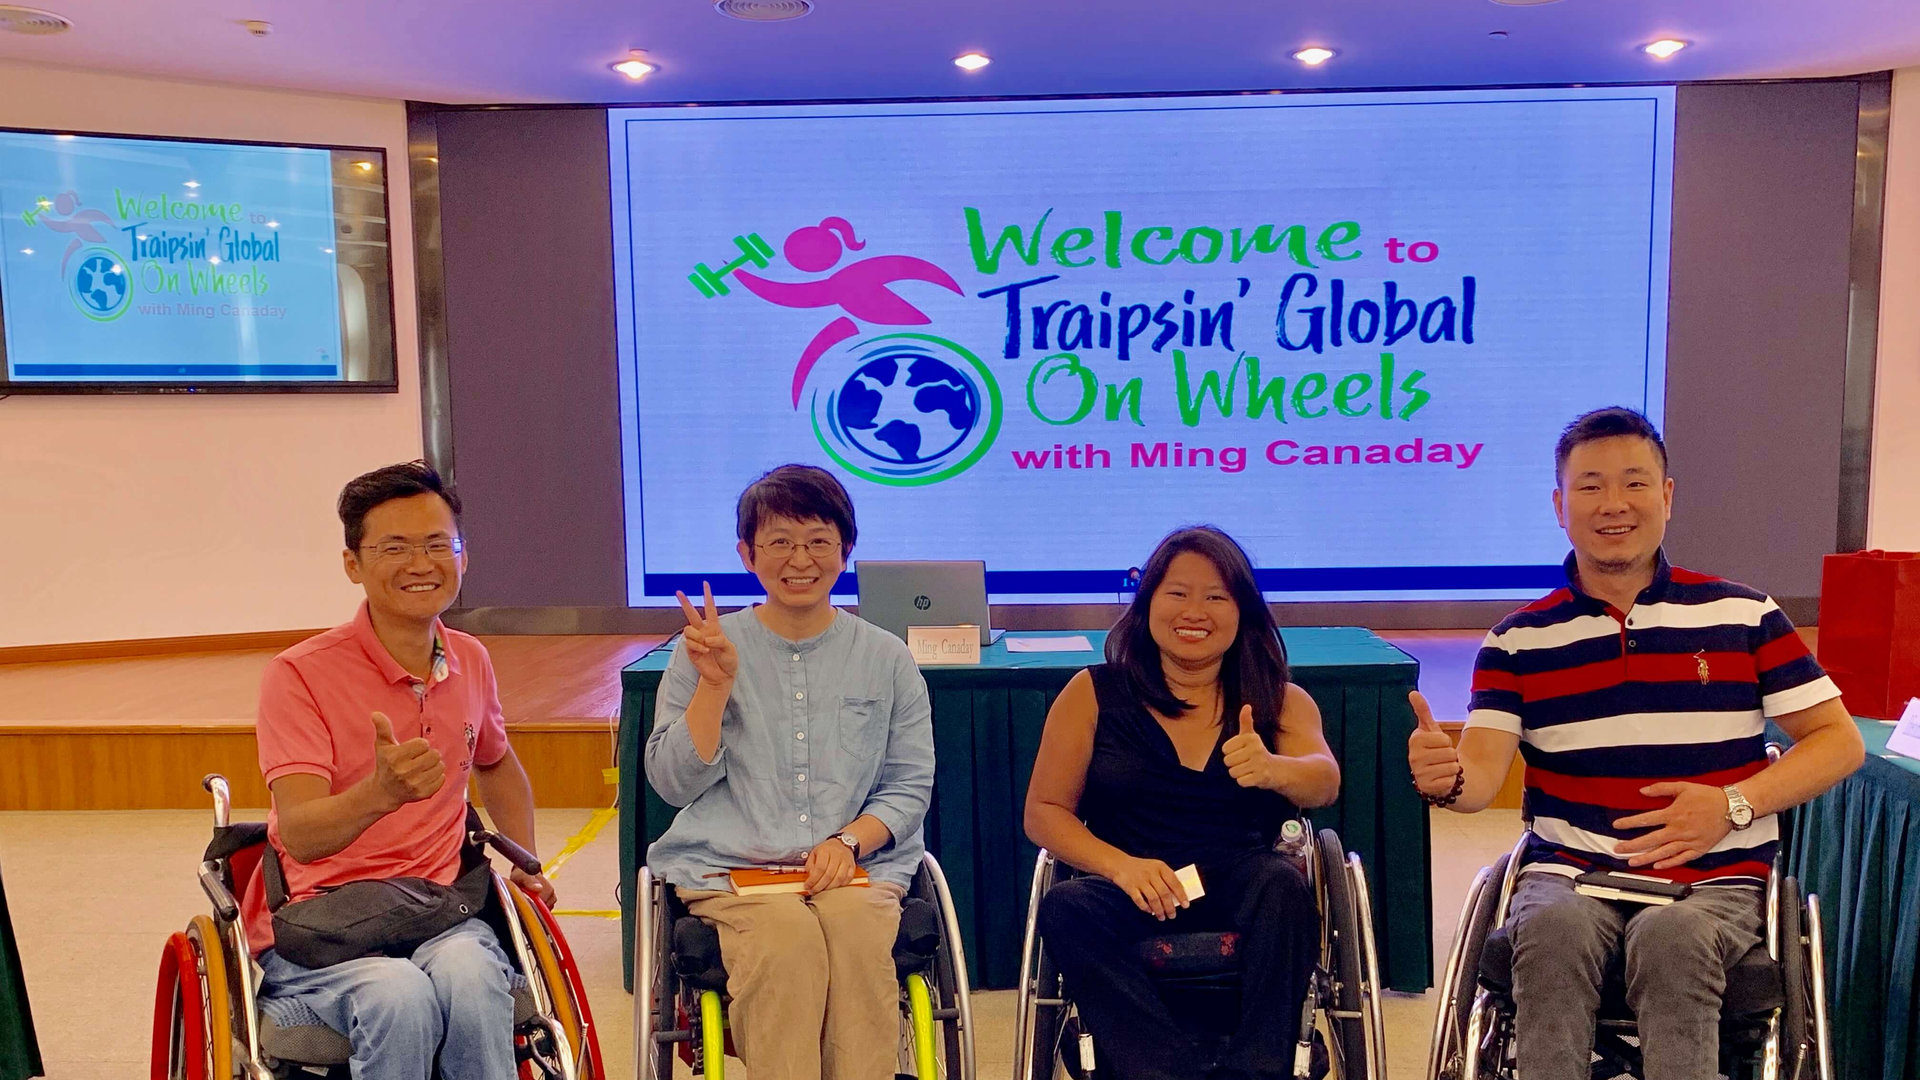 Ming and others in wheelchairs giving thumbs up signs